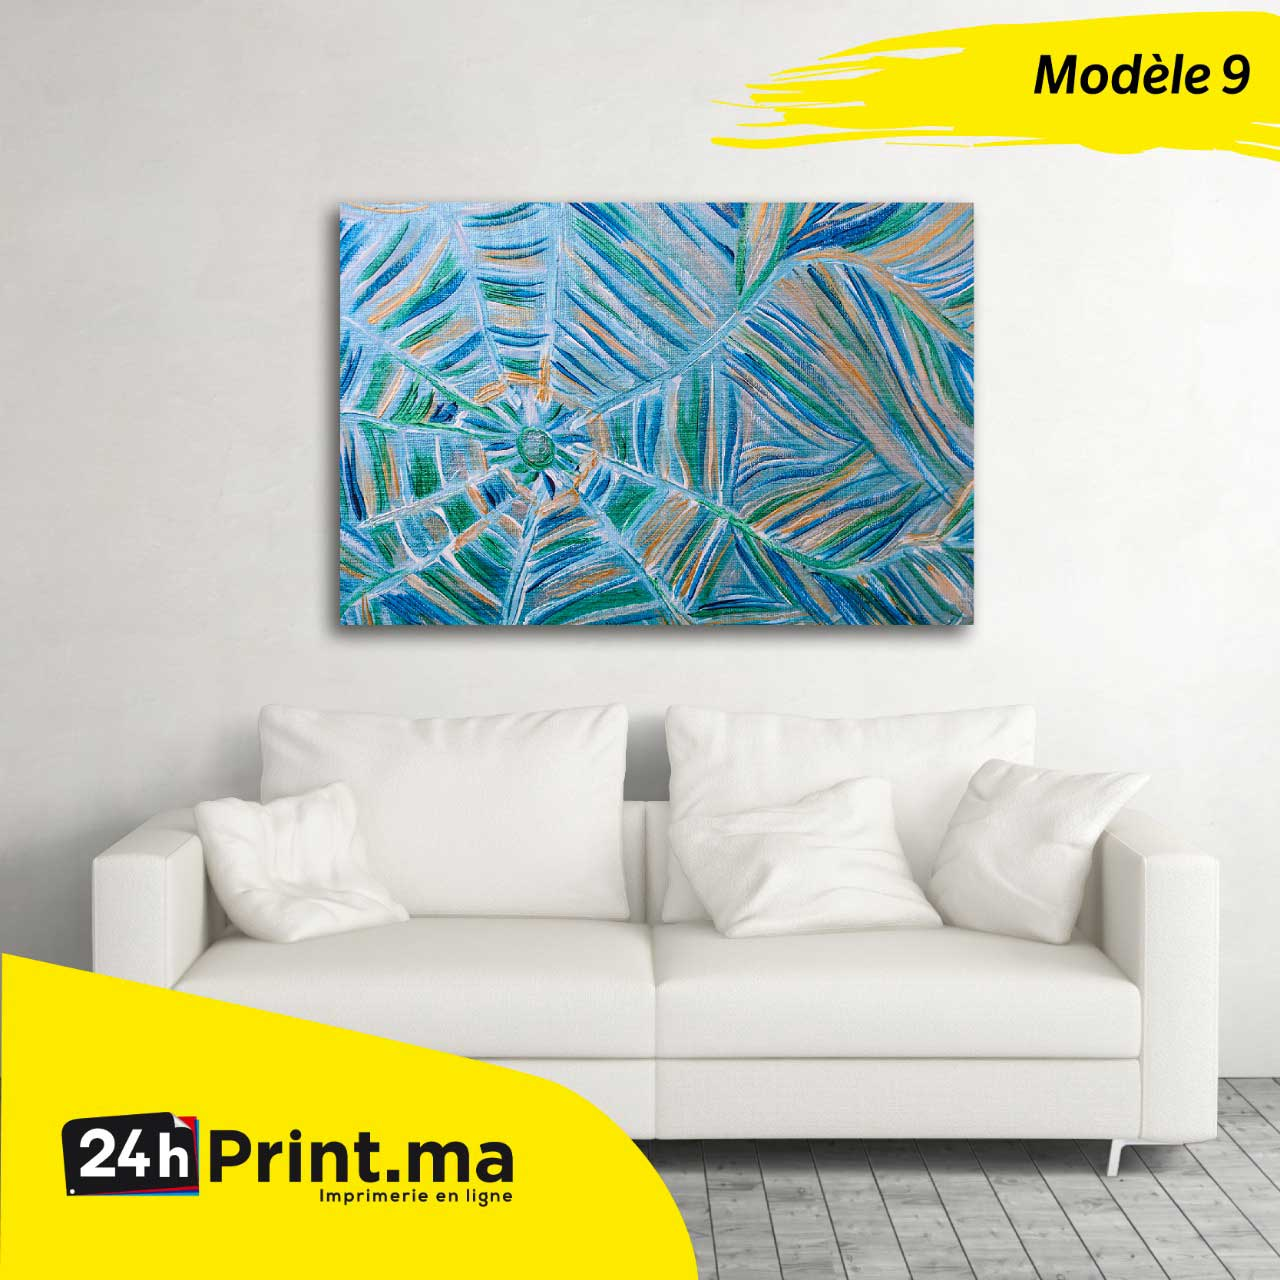 https://www.24hprint.ma/images/products_gallery_images/930.jpg